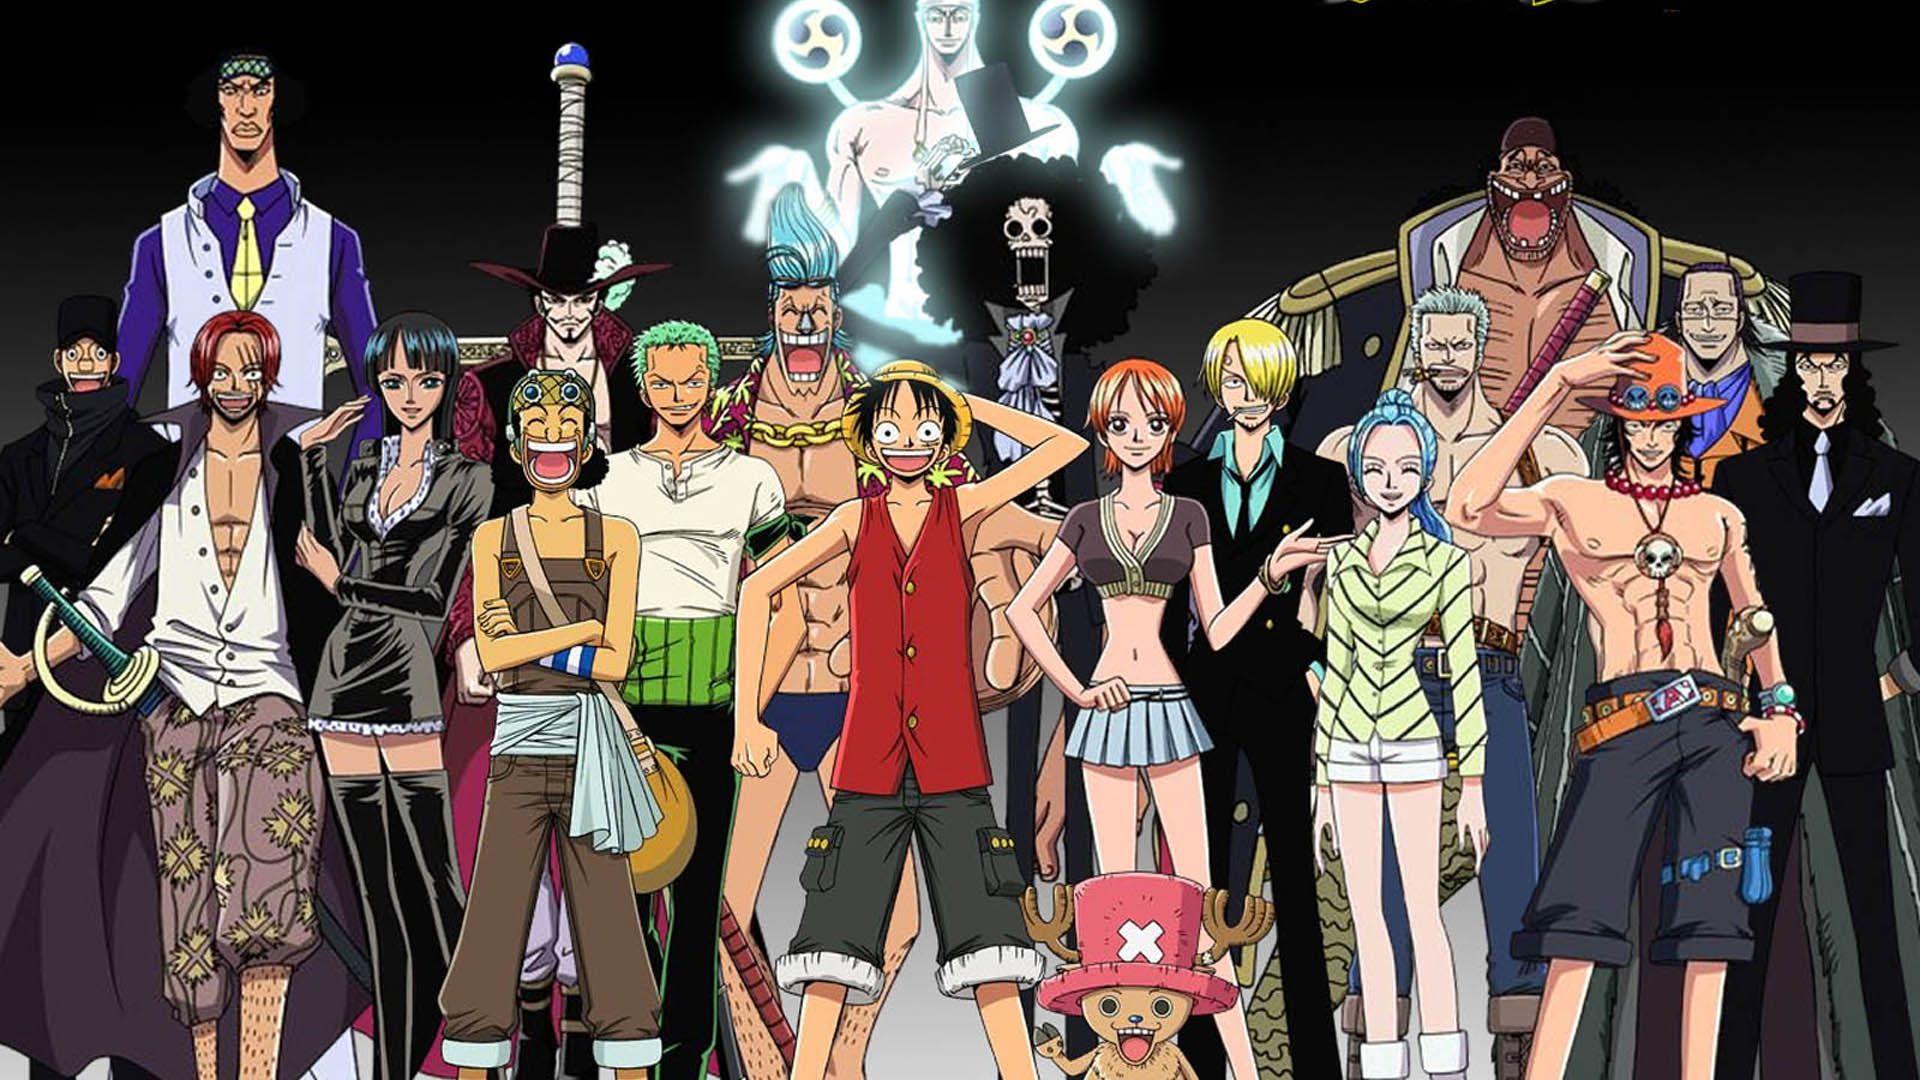 Anime One Piece One piece anime, One piece images, One